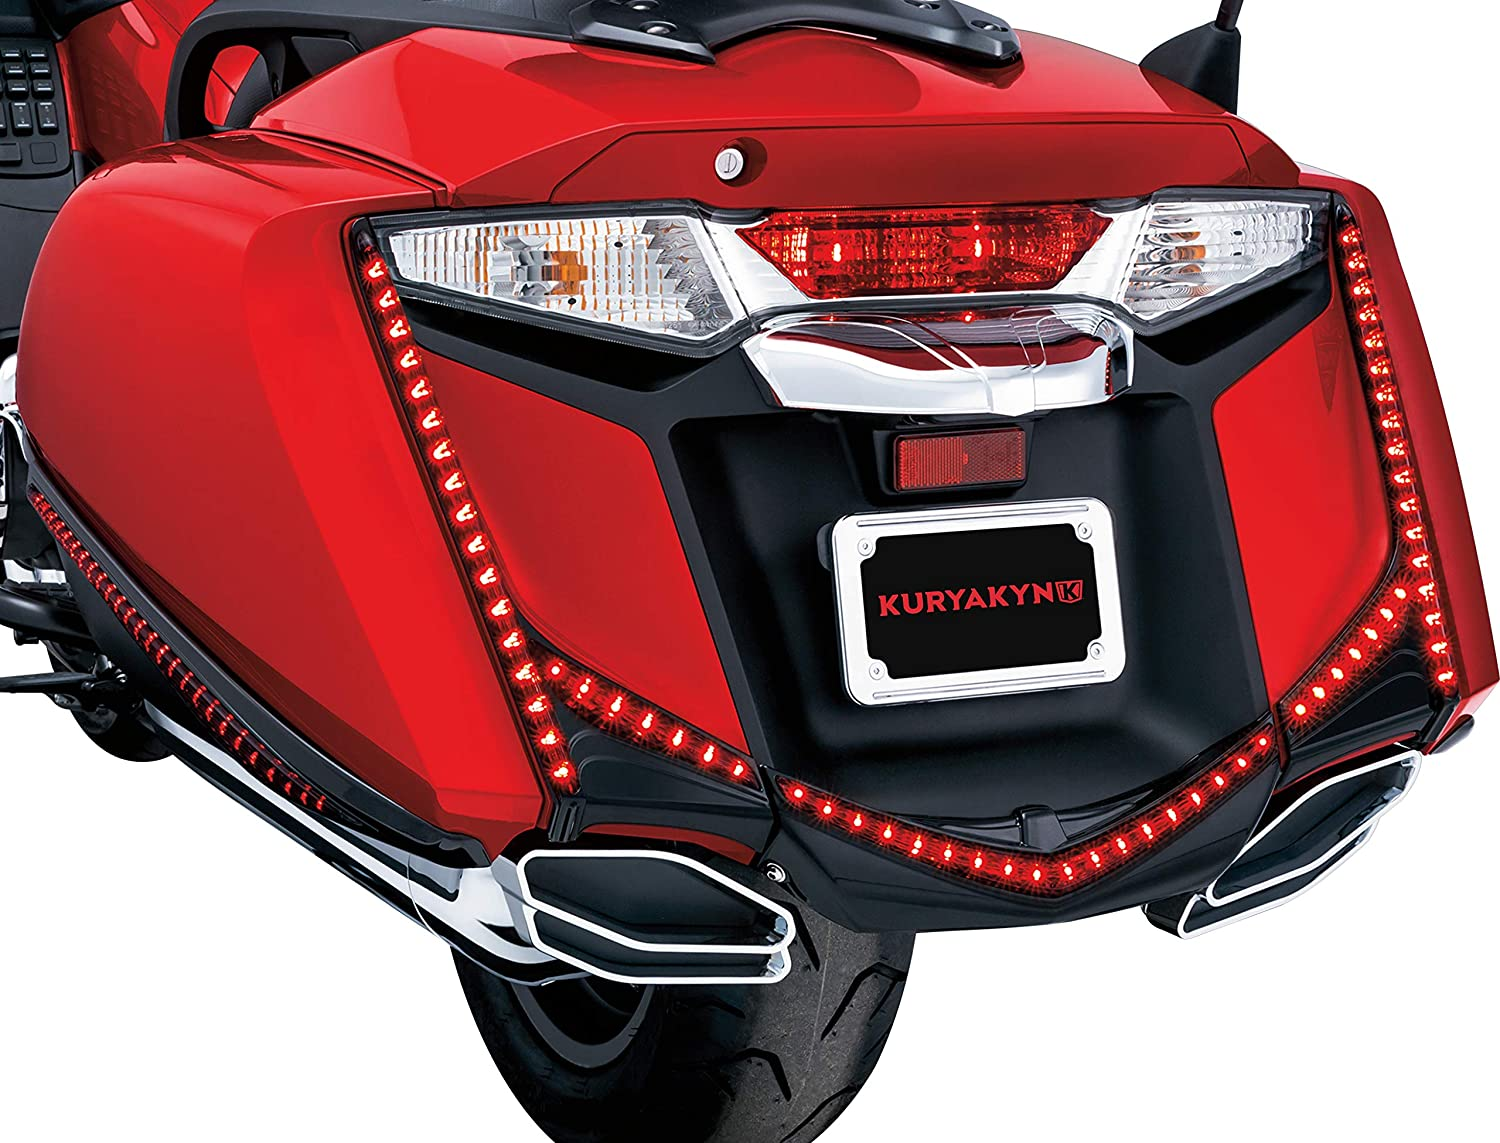 Chrome Small License Plate Frame Universal Fit for 4 x 7 Plates Kuryakyn 9163 Motorcycle Accent Accessory